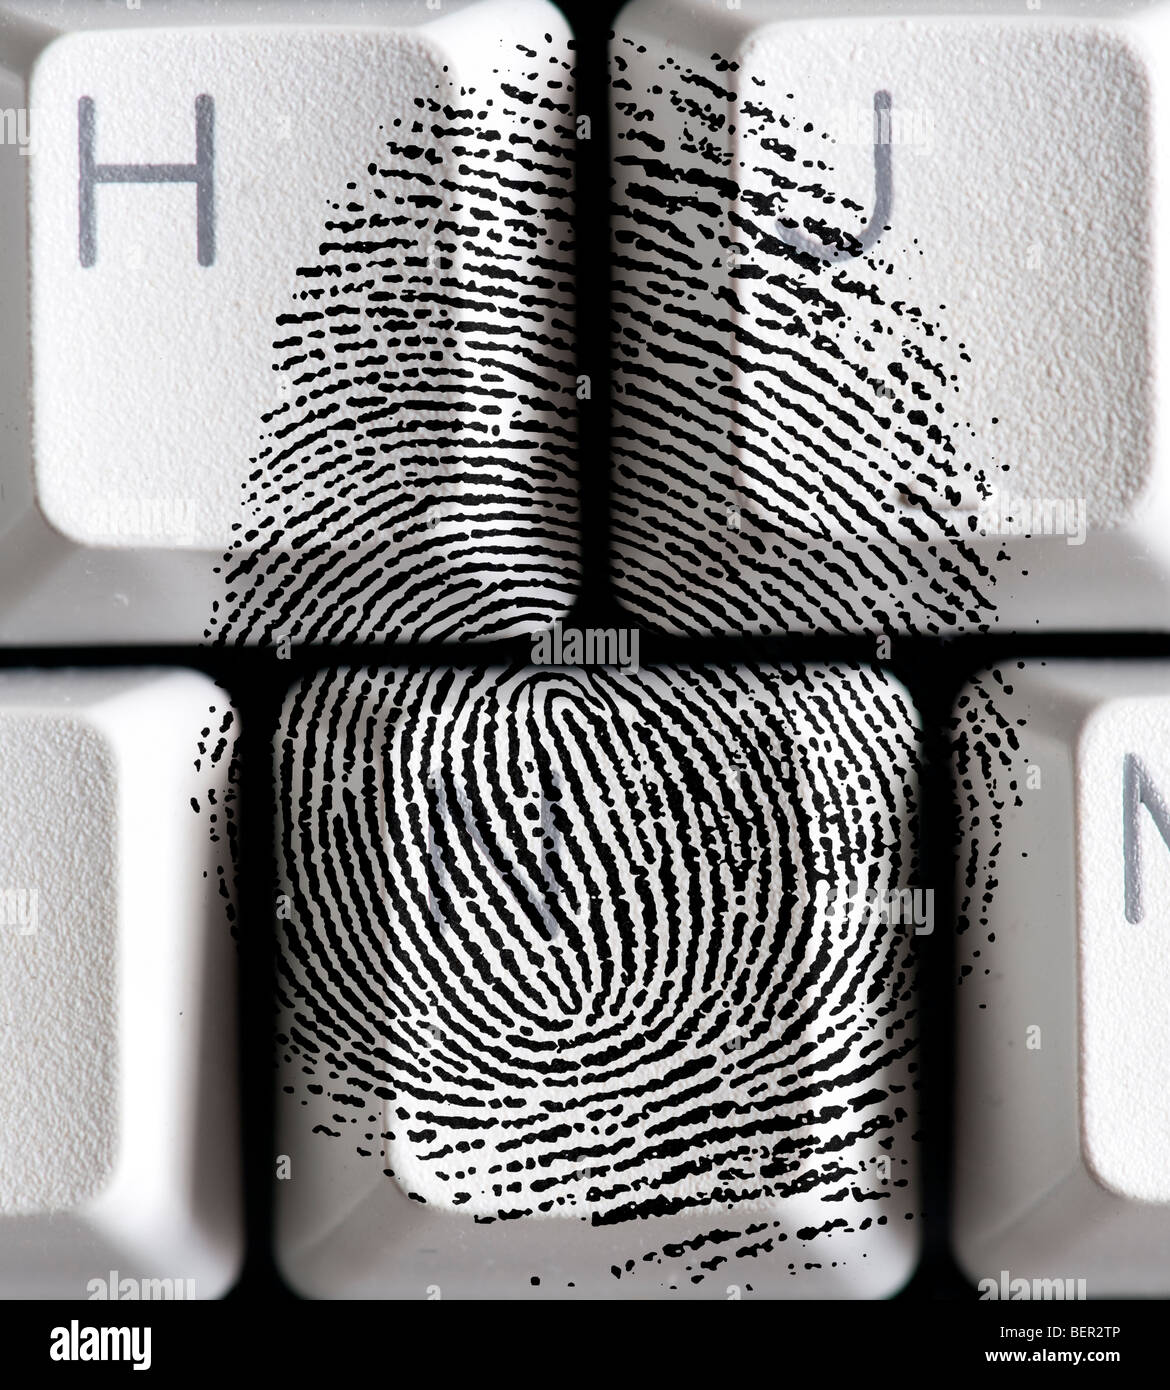 fingerprint on keyboard key illustrating identity theft Stock Photo